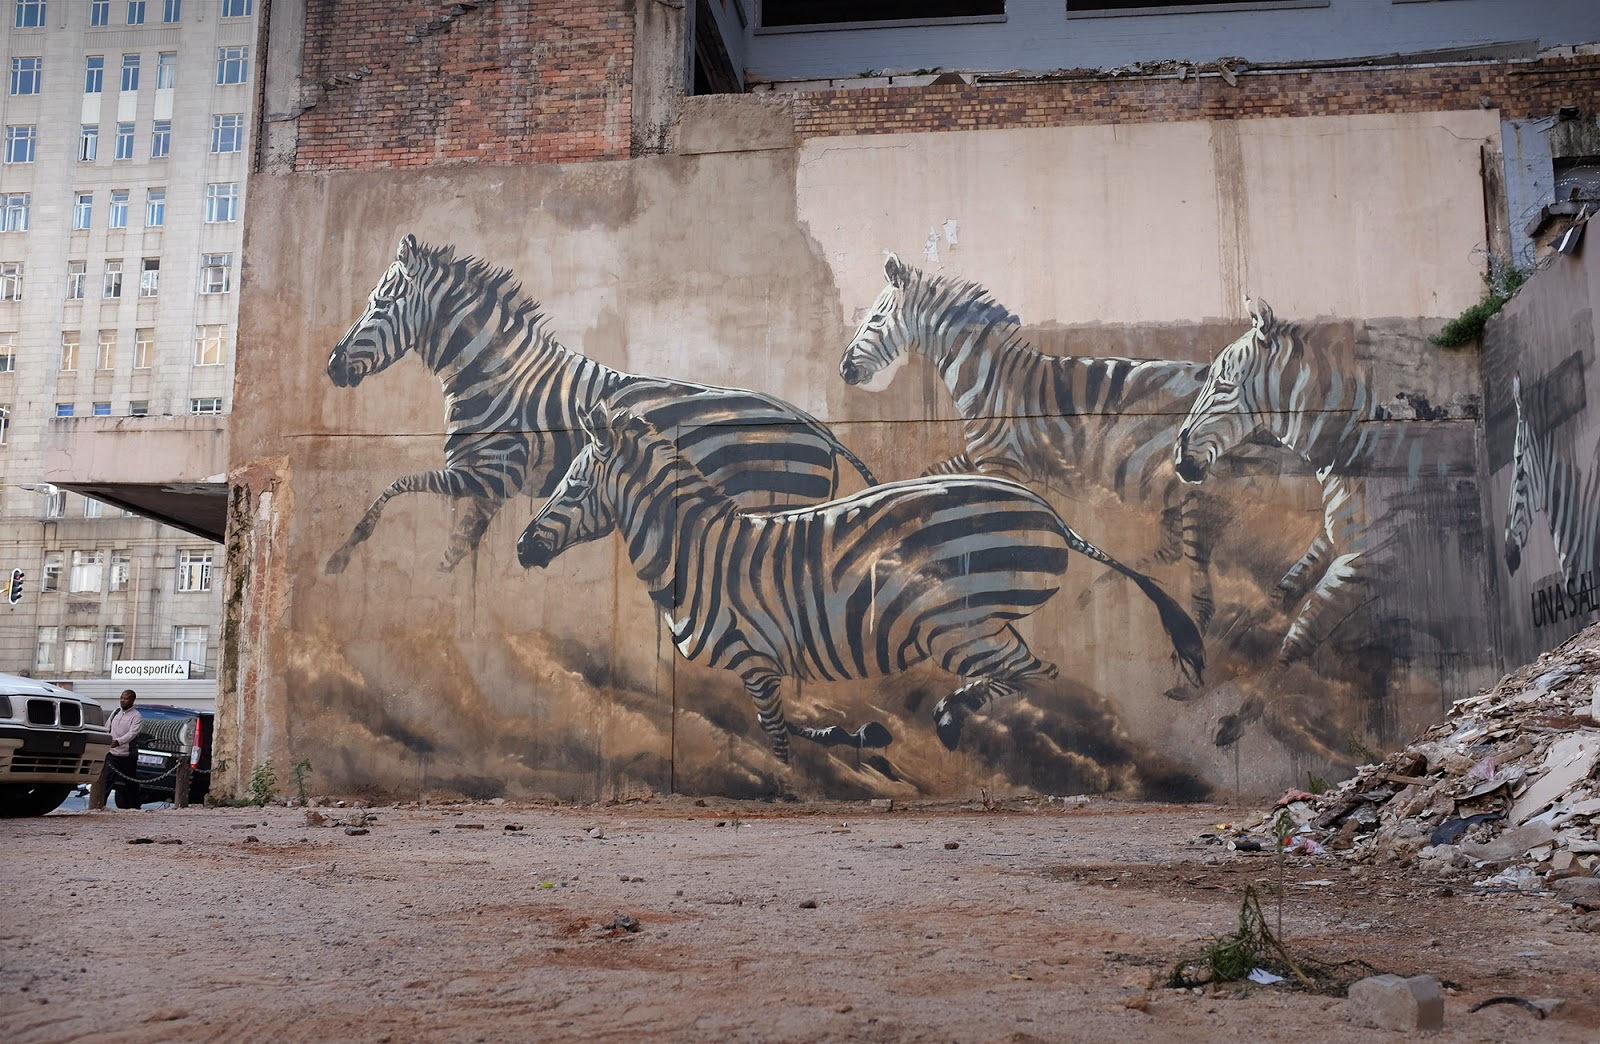 While we last heard from her a few weeks ago in Dominican Republic, Faith47 is back in South Africa where she just finished working on this breathtaking artwork on the streets of Johannesburg.